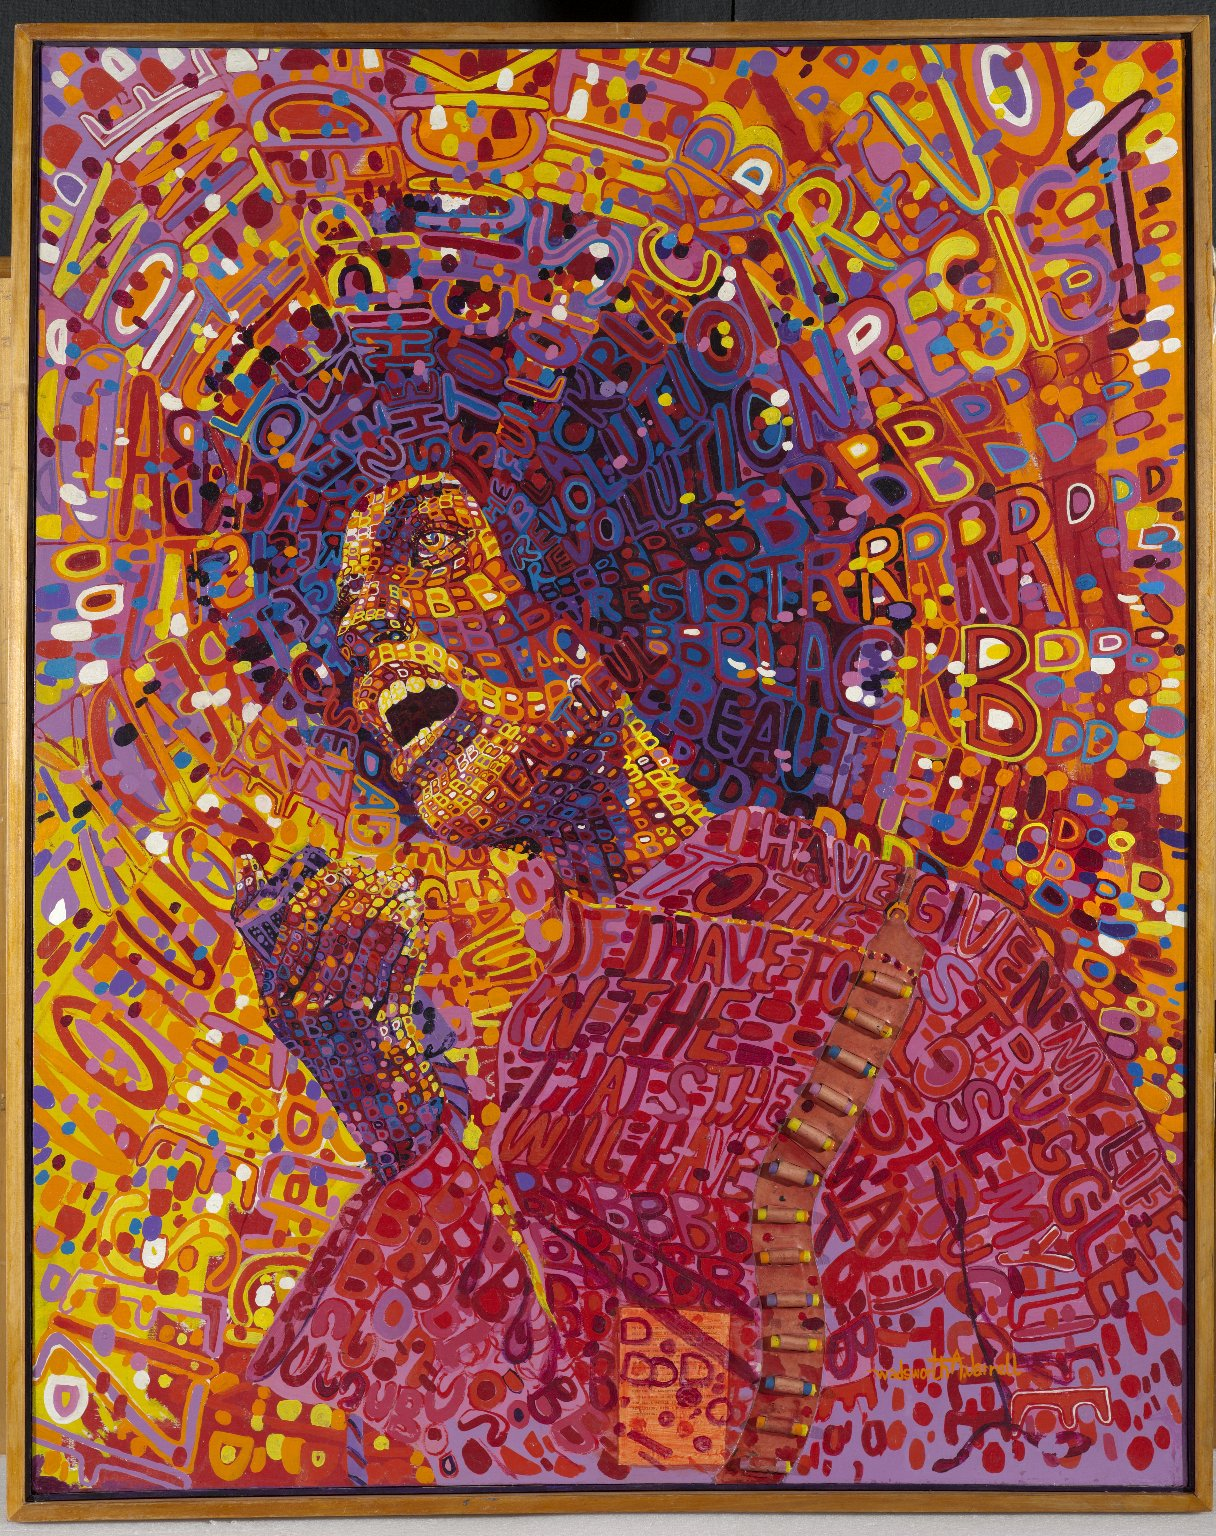 Wadsworth A. Jarrell, Revolutionary (Angela Davis), 1971. Brooklyn Museum, Gift of R.M. Atwater, Anna Wolfrom Dove, Alice Fiebiger, Joseph Fiebiger, Belle Campbell Harriss, and Emma L. Hyde, by exchange, Designated Purchase Fund, Mary Smith Dorward Fund, Dick S. Ramsay Fund, and Carll H. de Silver Fund © the artist. Photo: Brooklyn Museum